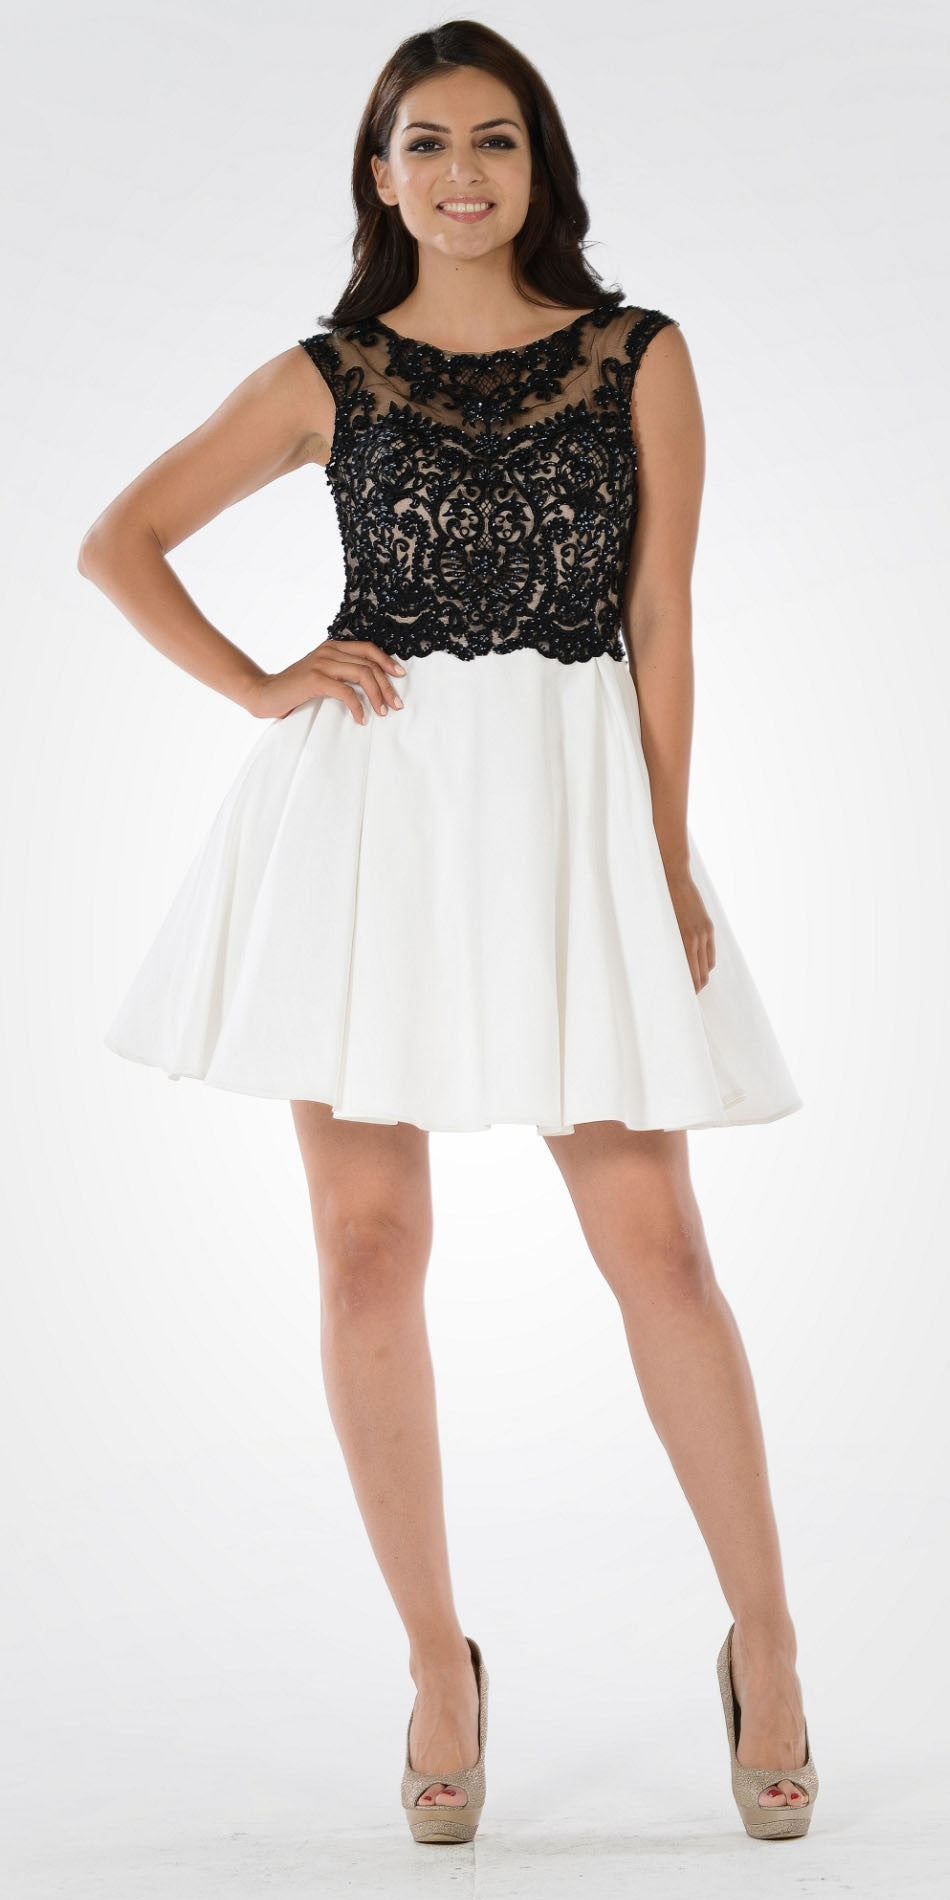 Black/White Sheer Illusion Top Chiffon Skirt Cap Sleeve Party Dress Short